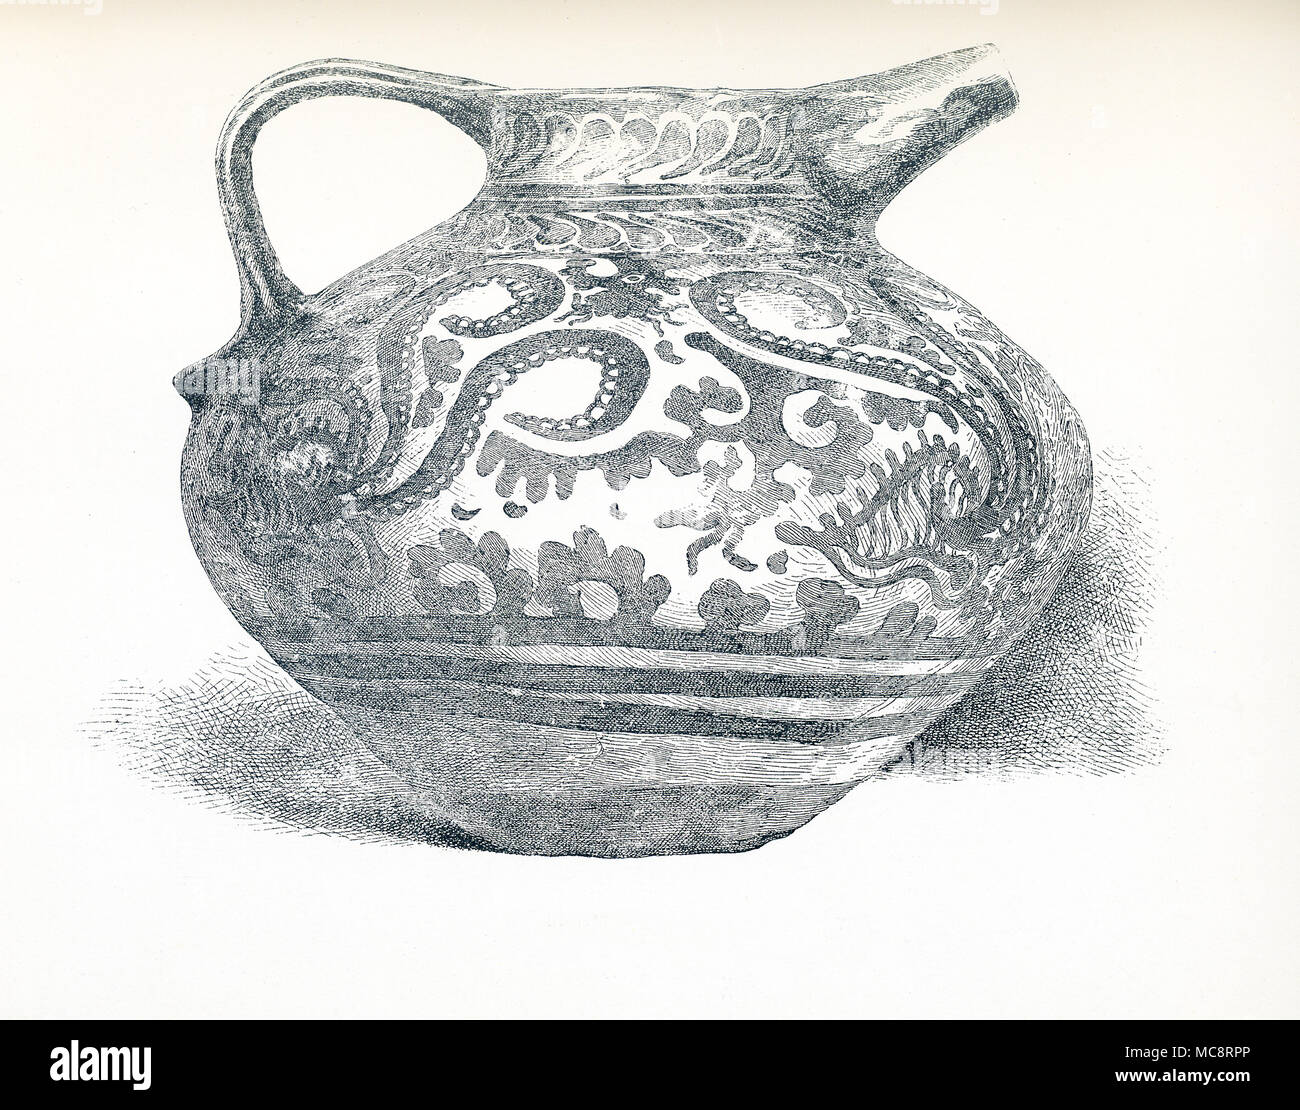 This illustration dates to around 1900. It shows a Minoan Vase or jug that was in the Abbott Collection and is now in the Brooklyn Museum in New York. The vase is considered one of the world's most important works of Minoan pottery. The designs show five mollusks that known as nautili floating above the sea floor. The undulating lines of the water plants and nautili tentacles reflect the Minoans love of blod, sweeping designs. For the Egyptians, Minoan painting must have provided an exotic contrats to their own balanced and ordered designs. It dates to around 1575 to 1500  B.C. - Stock Image